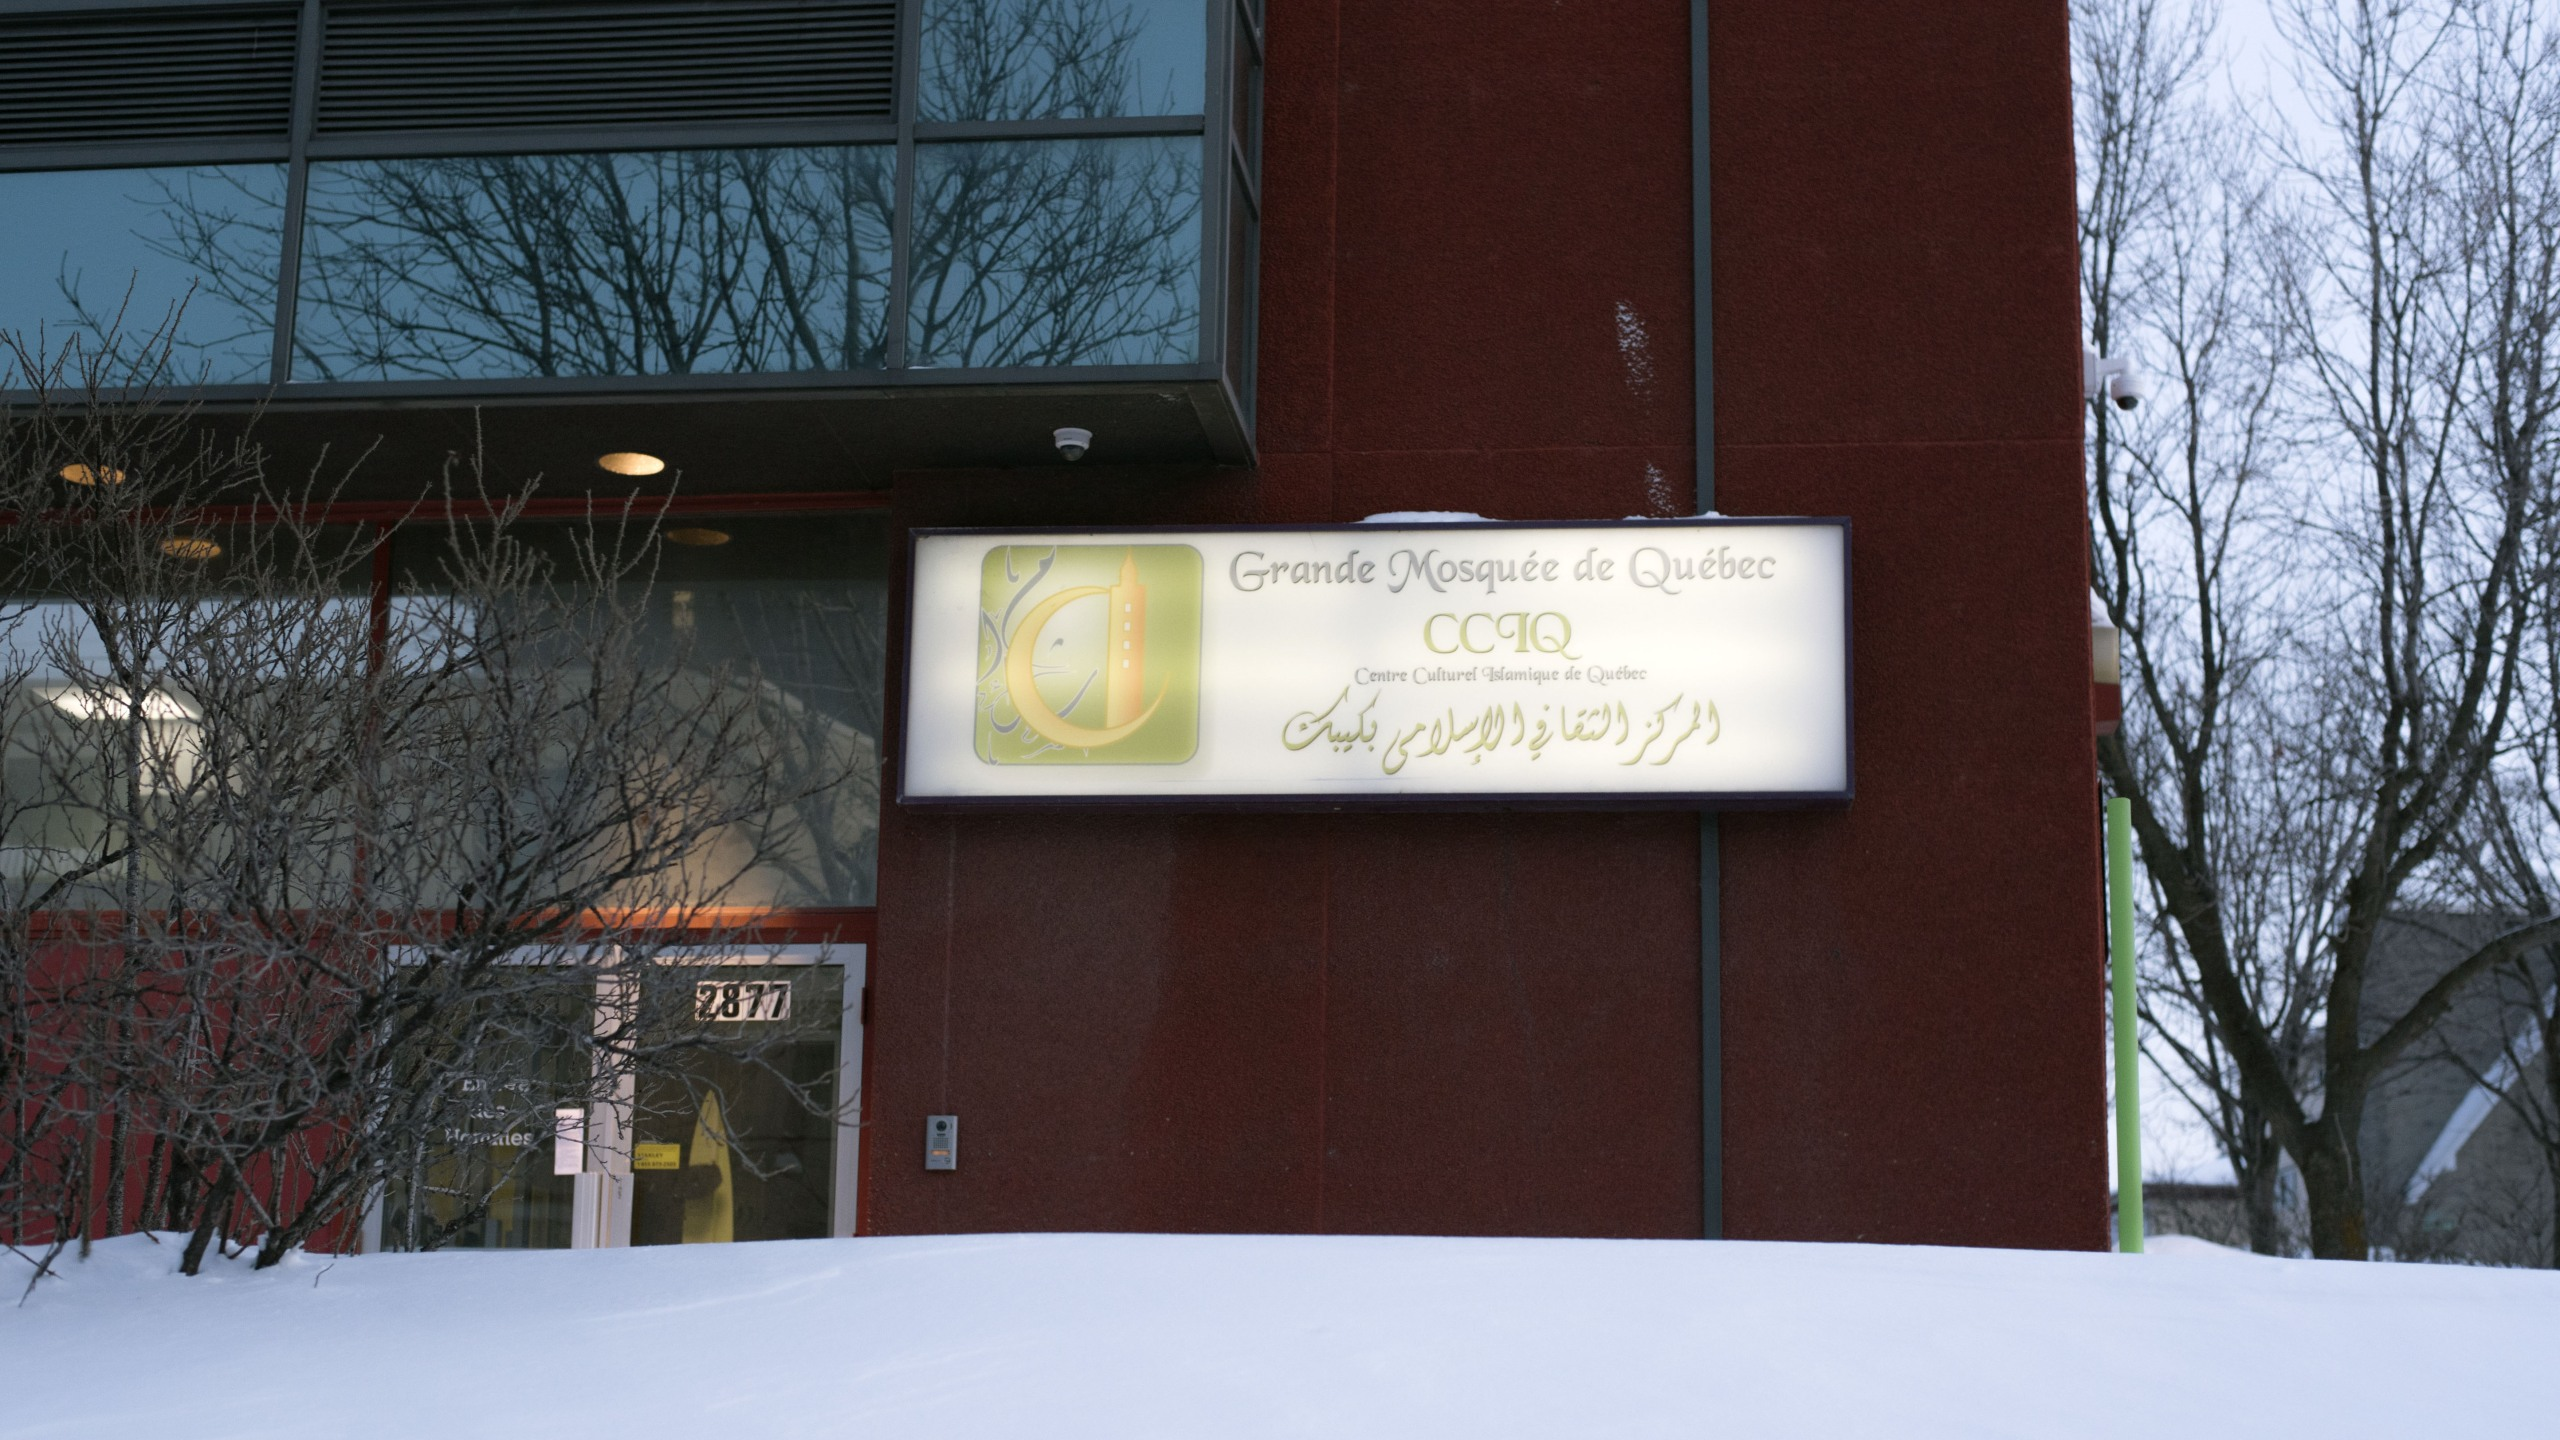 The Islamic Cultural Center of Quebec, where an attack took place on January 29, 2017 is viewed in Quebec City, Canada on January 22, 2019. (Photo by Alice Chiche/AFP via Getty Images)